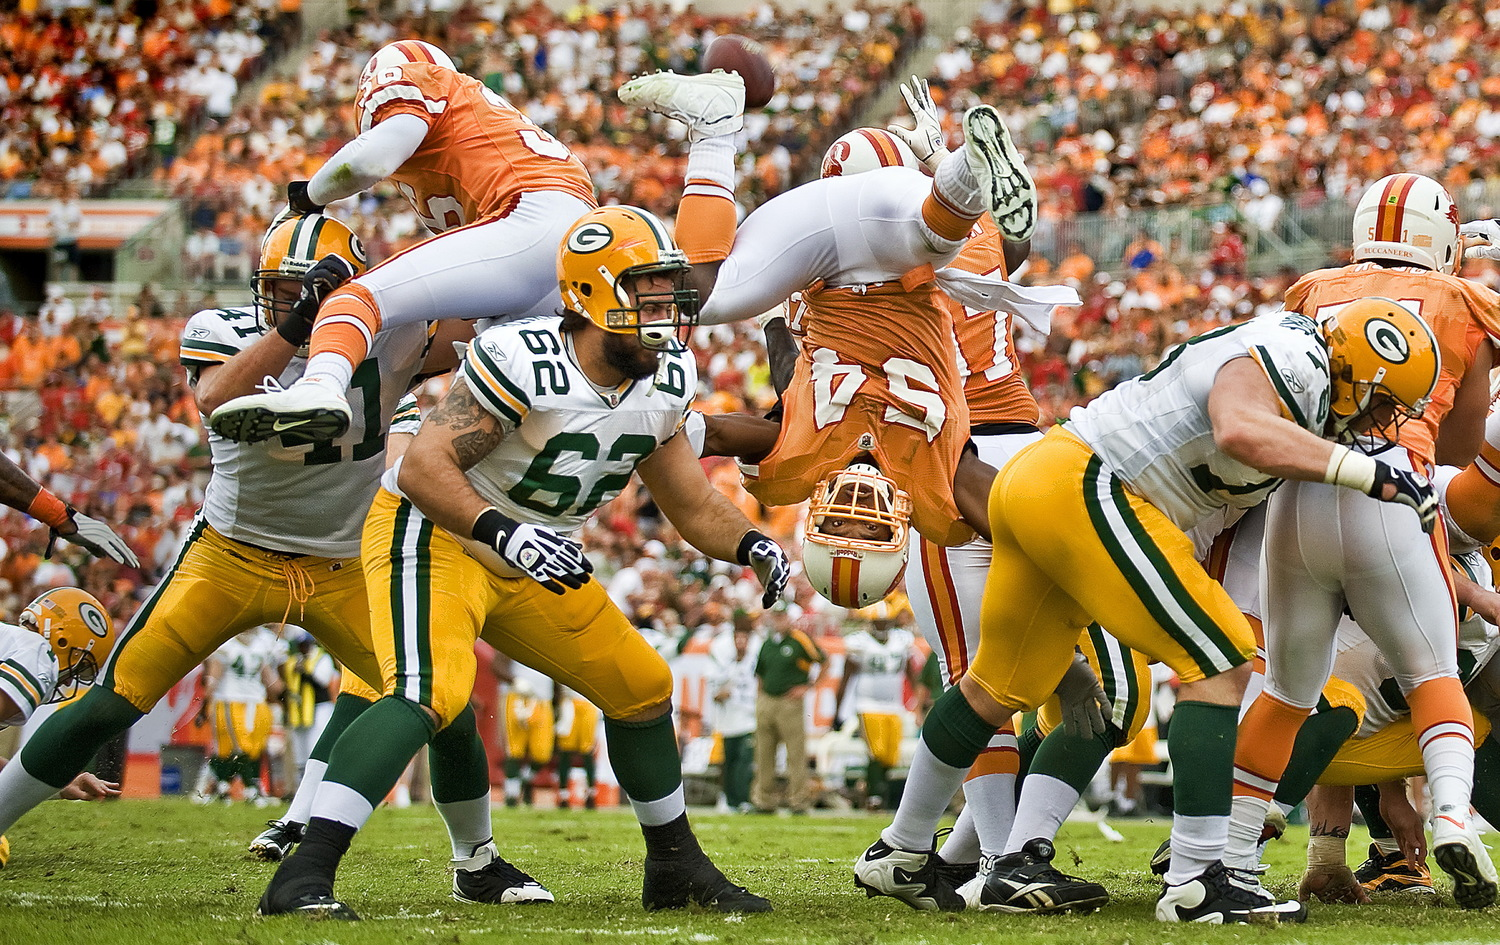 Green Bay Packers v Tampa Bay Buccaneers.© Bill Frakes/Sports Illustrated